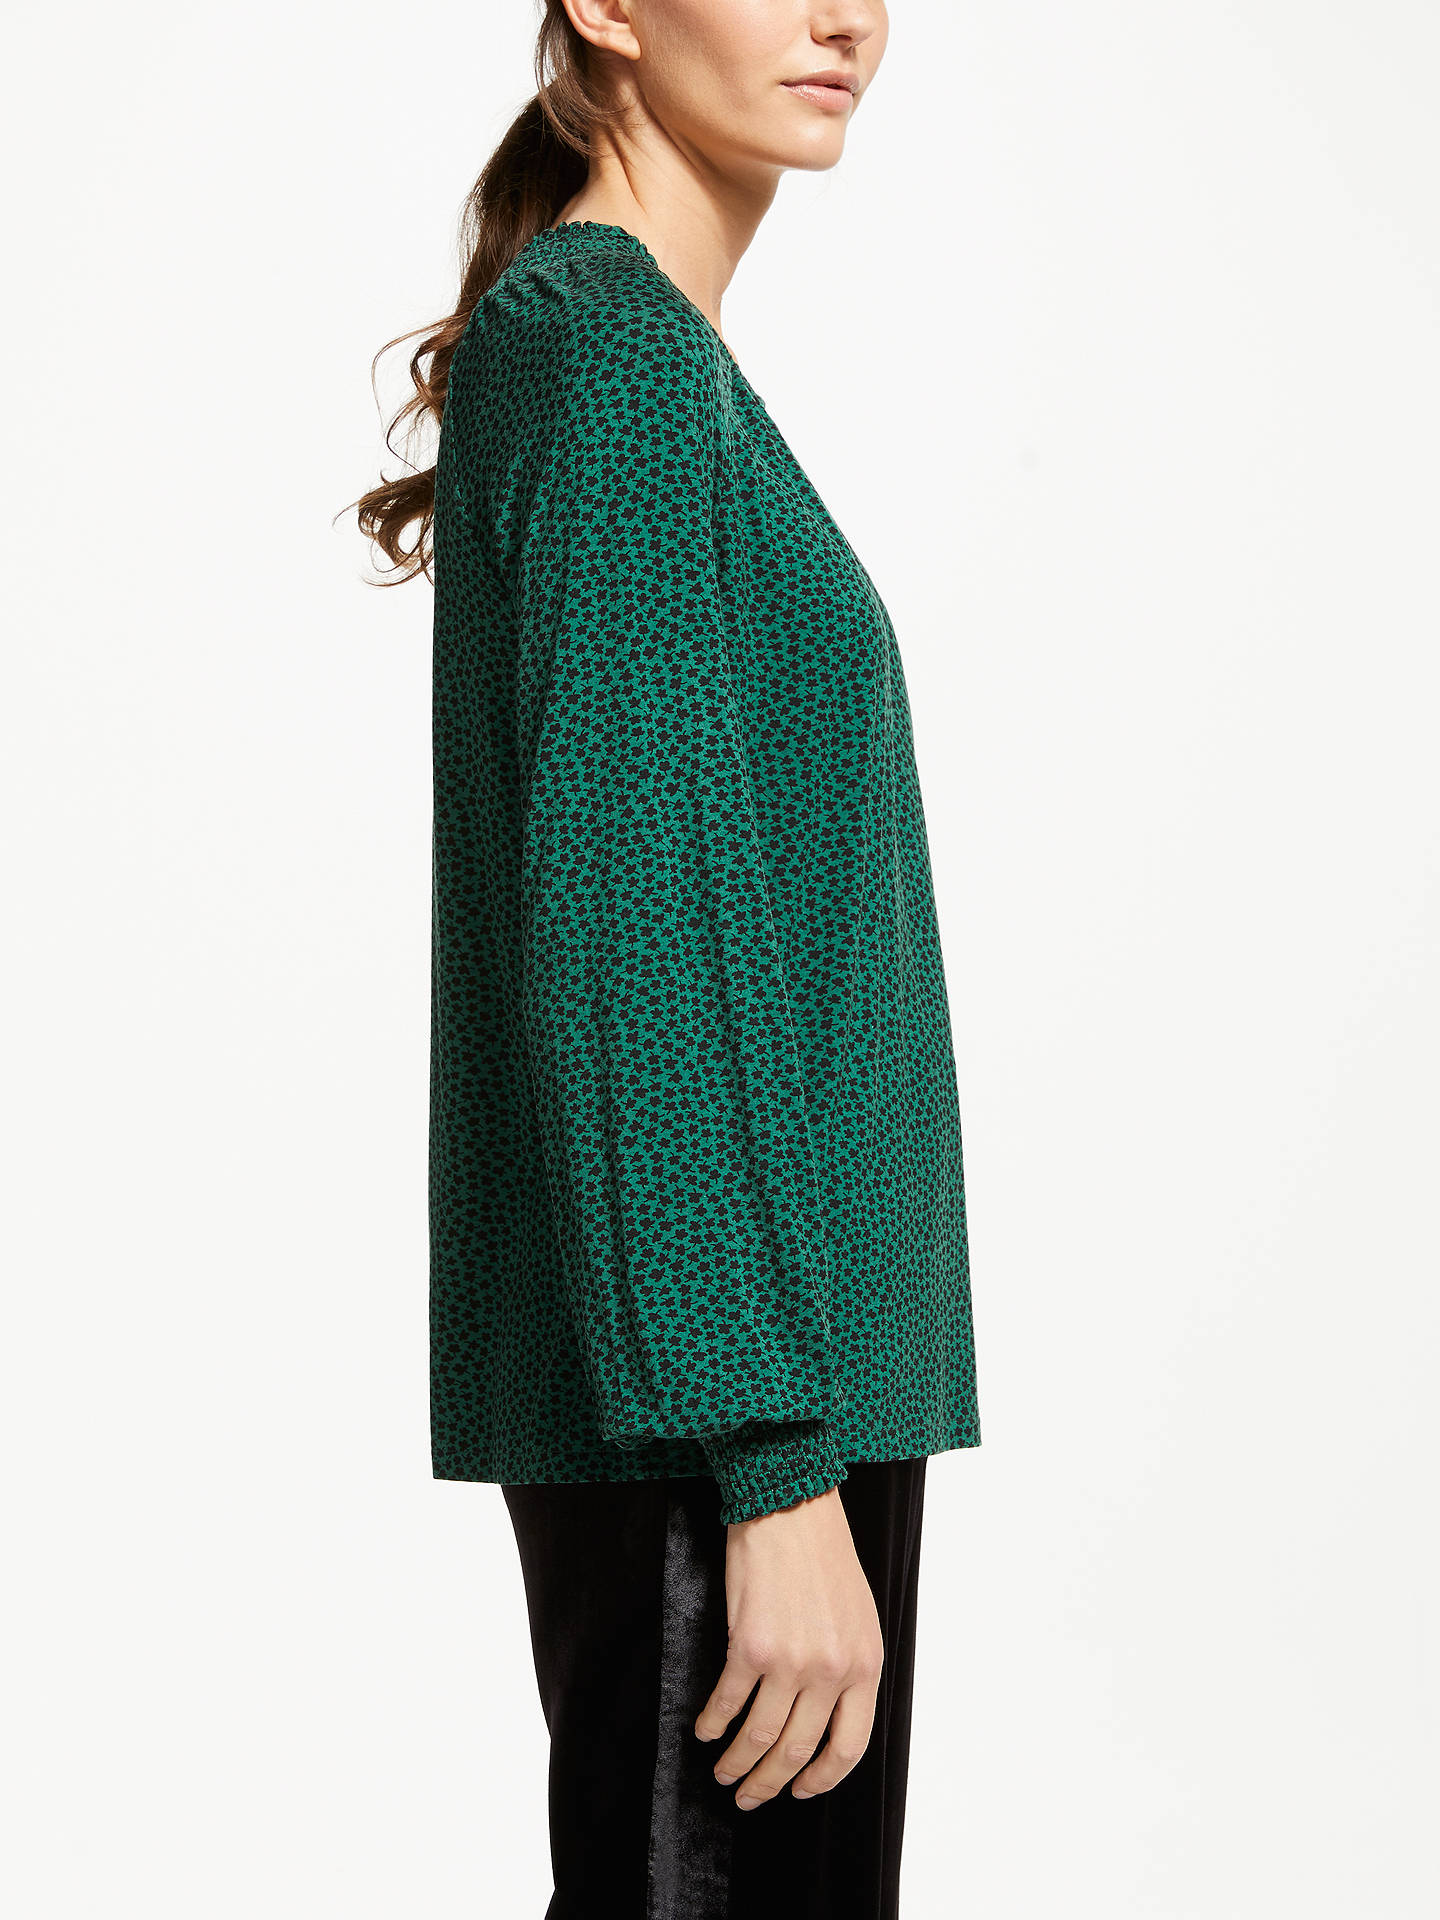 BuyBoden Vicky Jersey Top, Amazon Green Petal, 12 Online at johnlewis.com